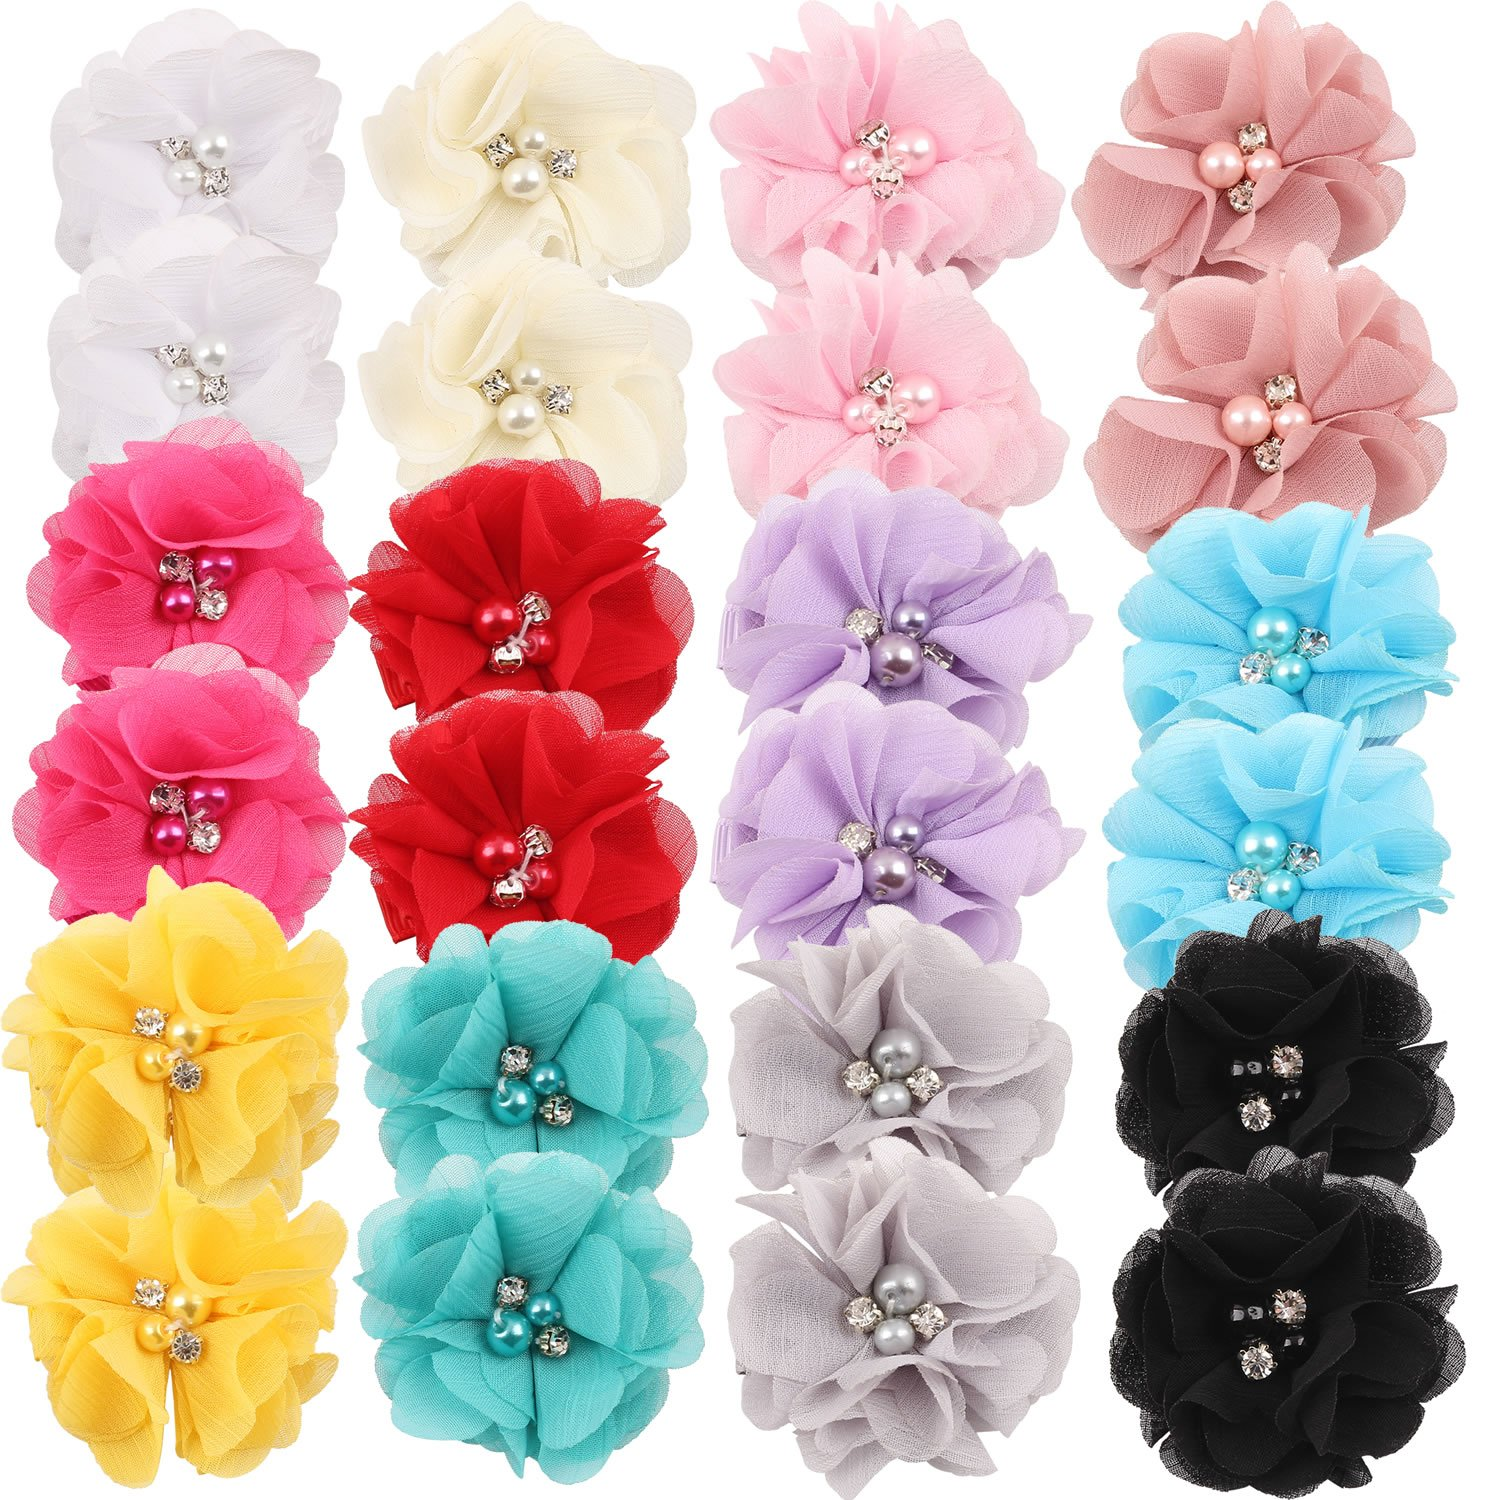 inSowni 2'' Alligator Hair Clips Chiffon Flower with Rhinestone Pearl for Baby Girl Toddlers